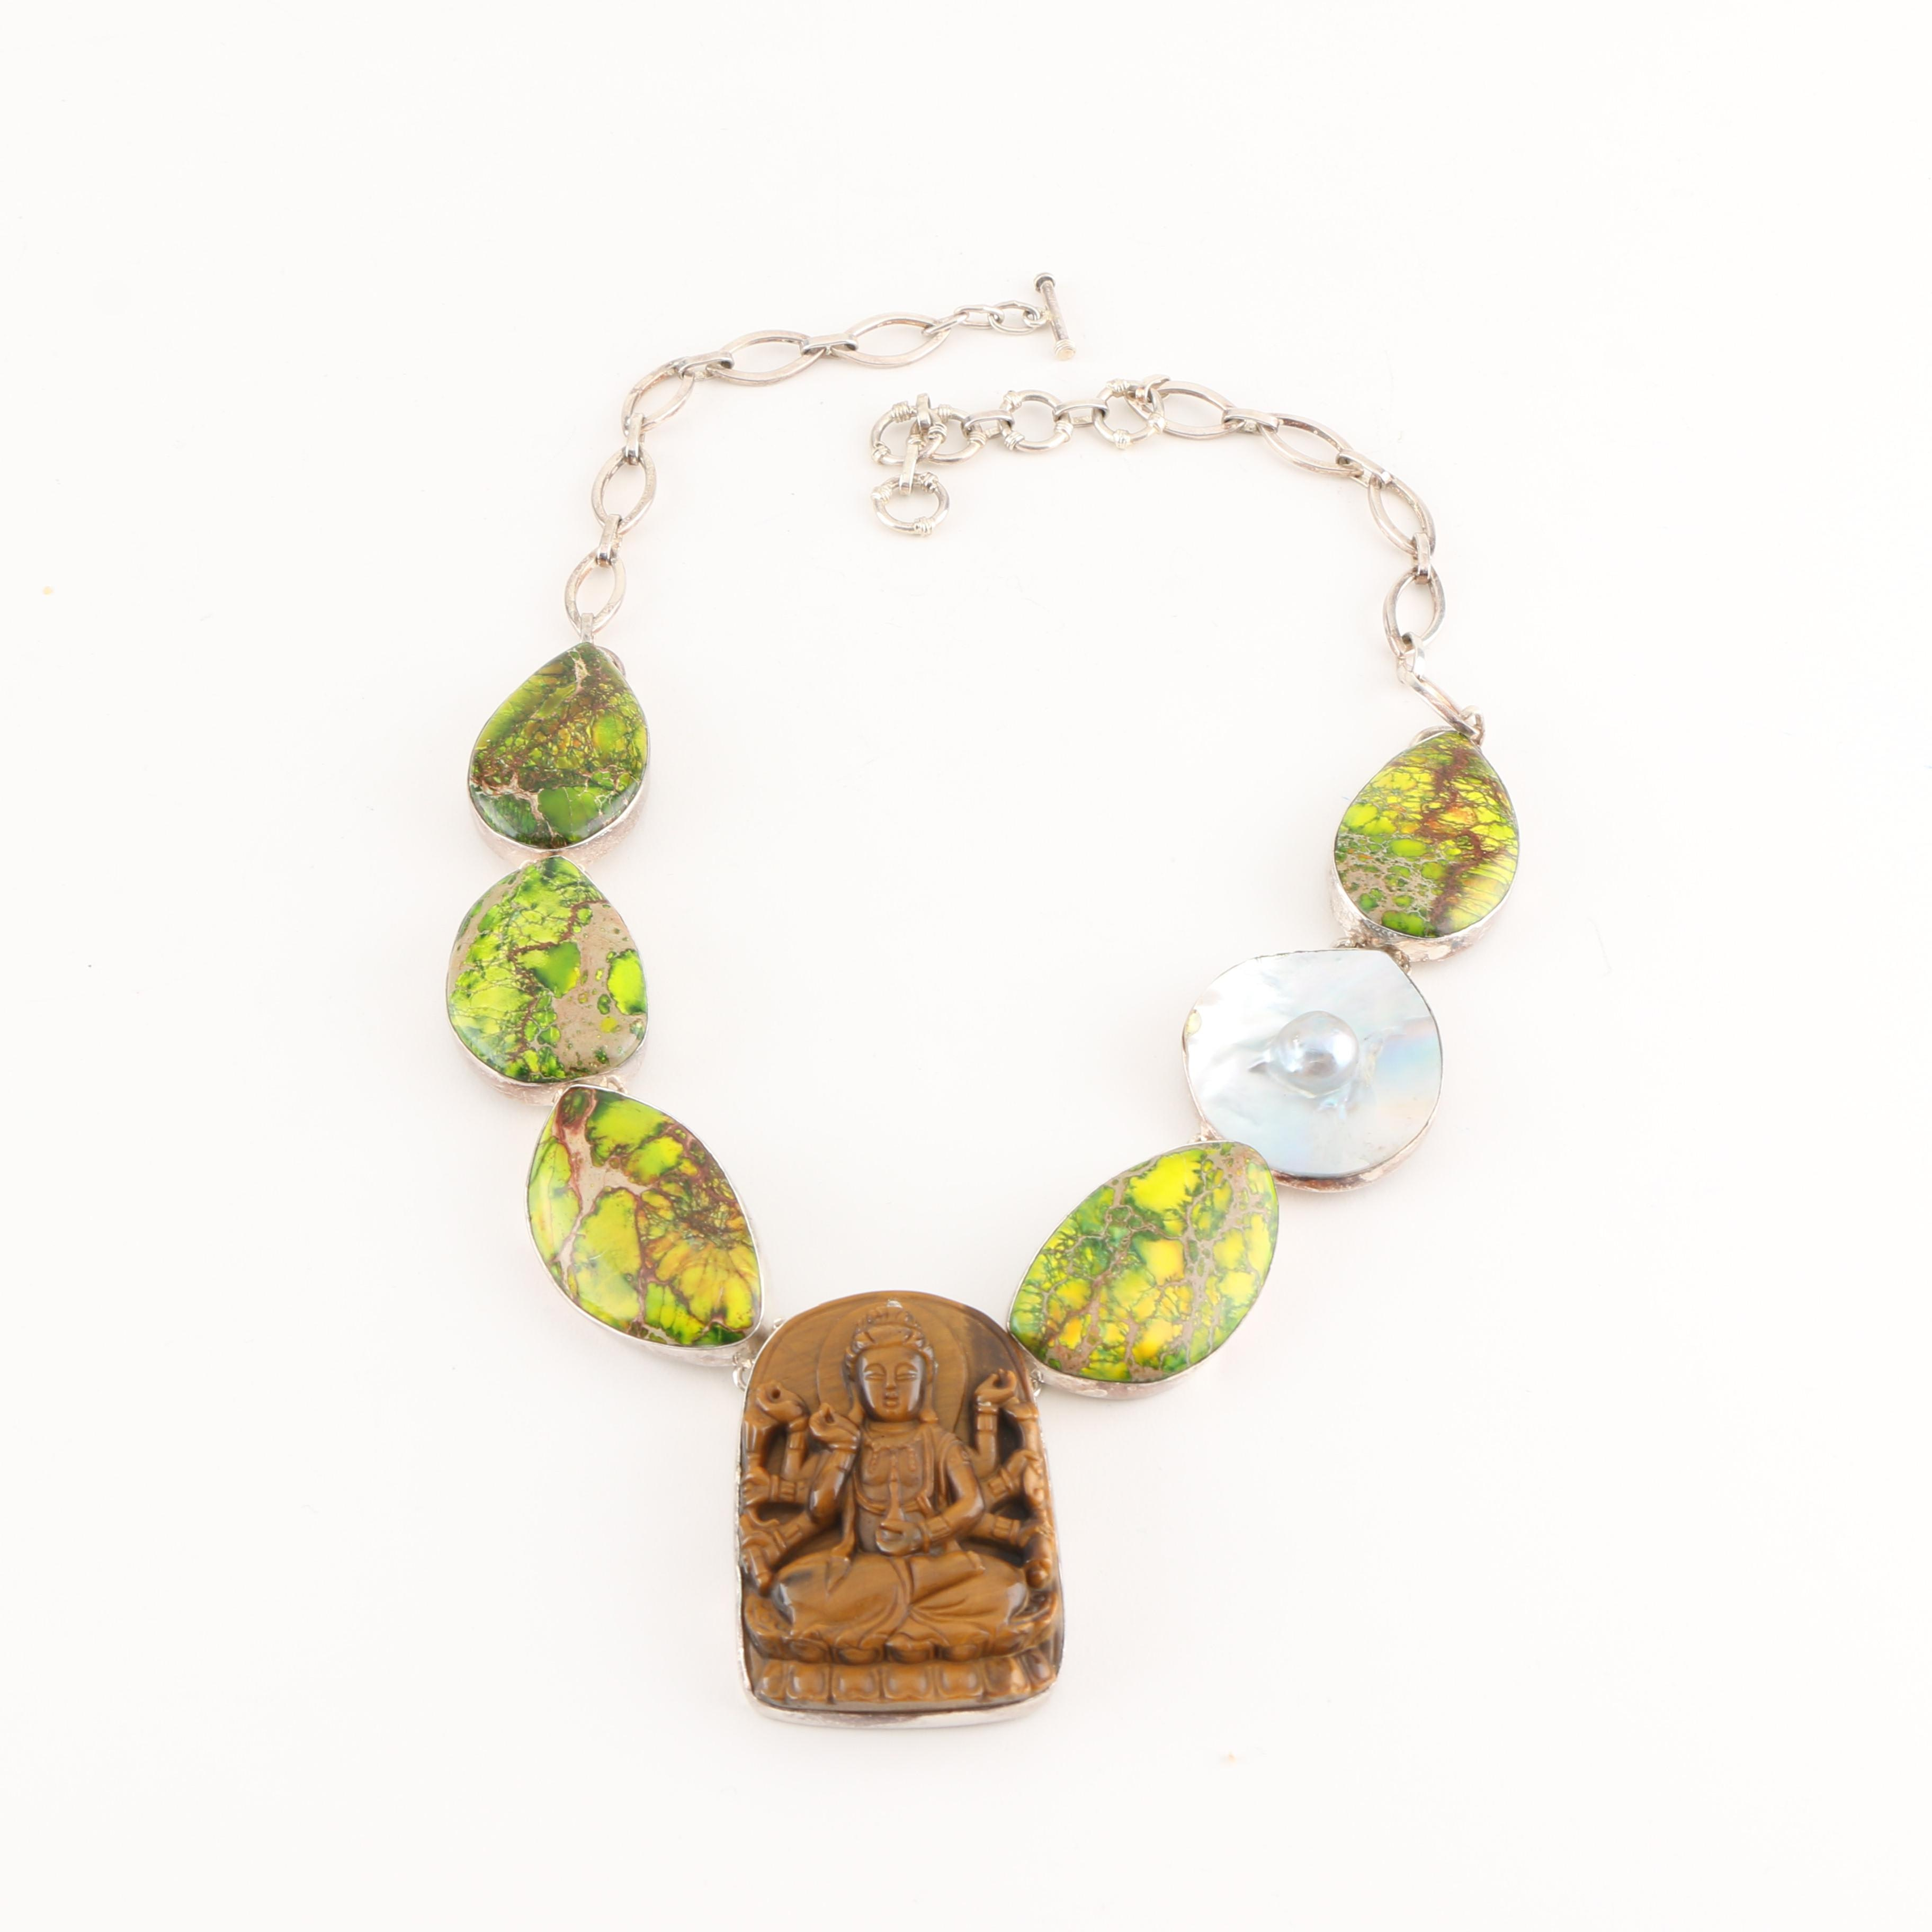 Sterling Silver Statement Necklace Featuring a Carving of Avalokiteśvara